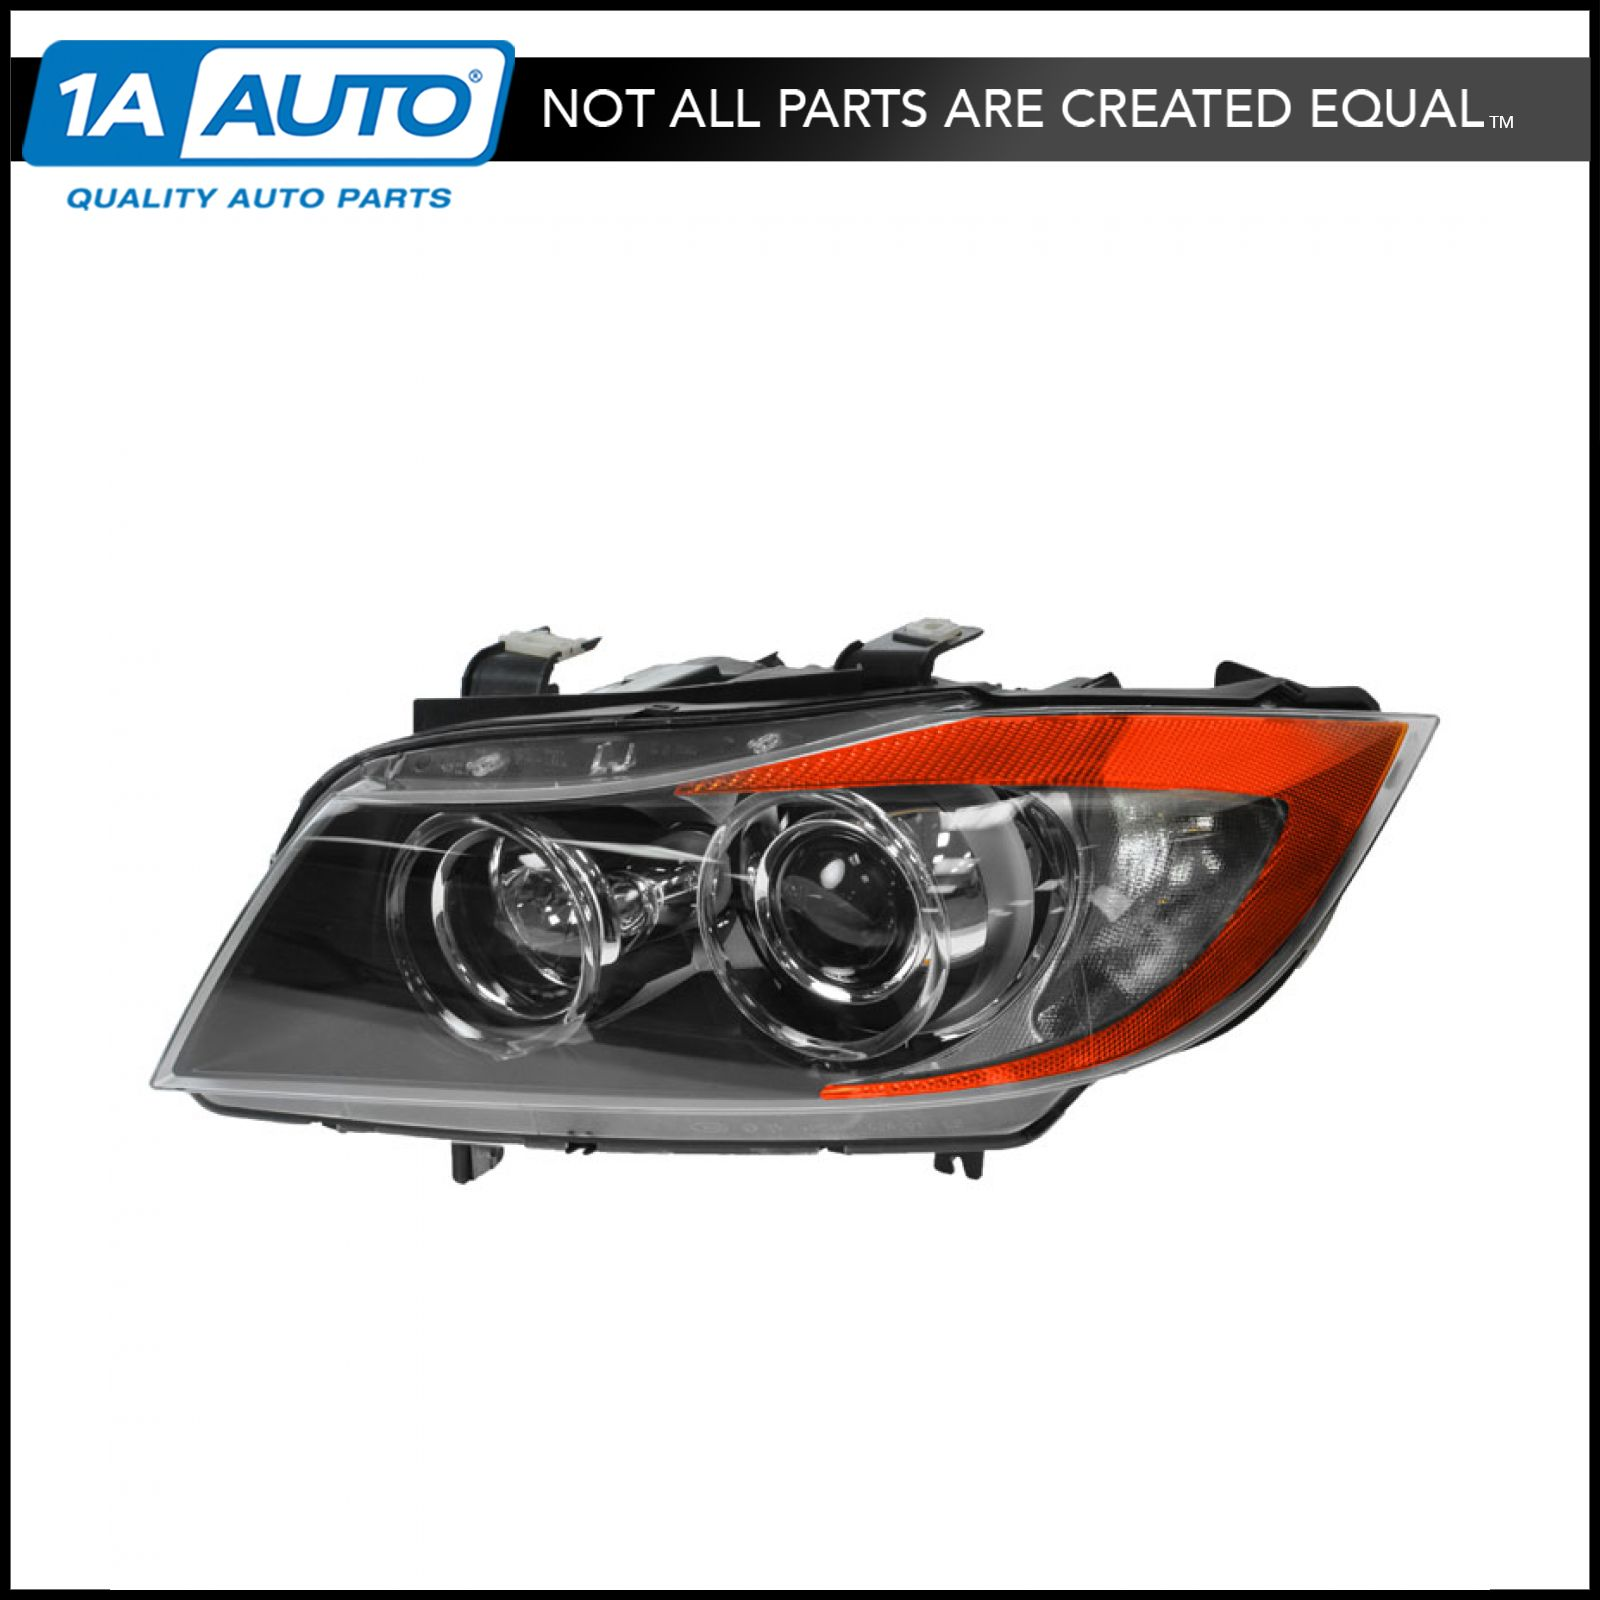 Details about HELLA Bi-Xenon HID Adaptive Headlight Driver Side Left LH for  BMW E90 3 Series